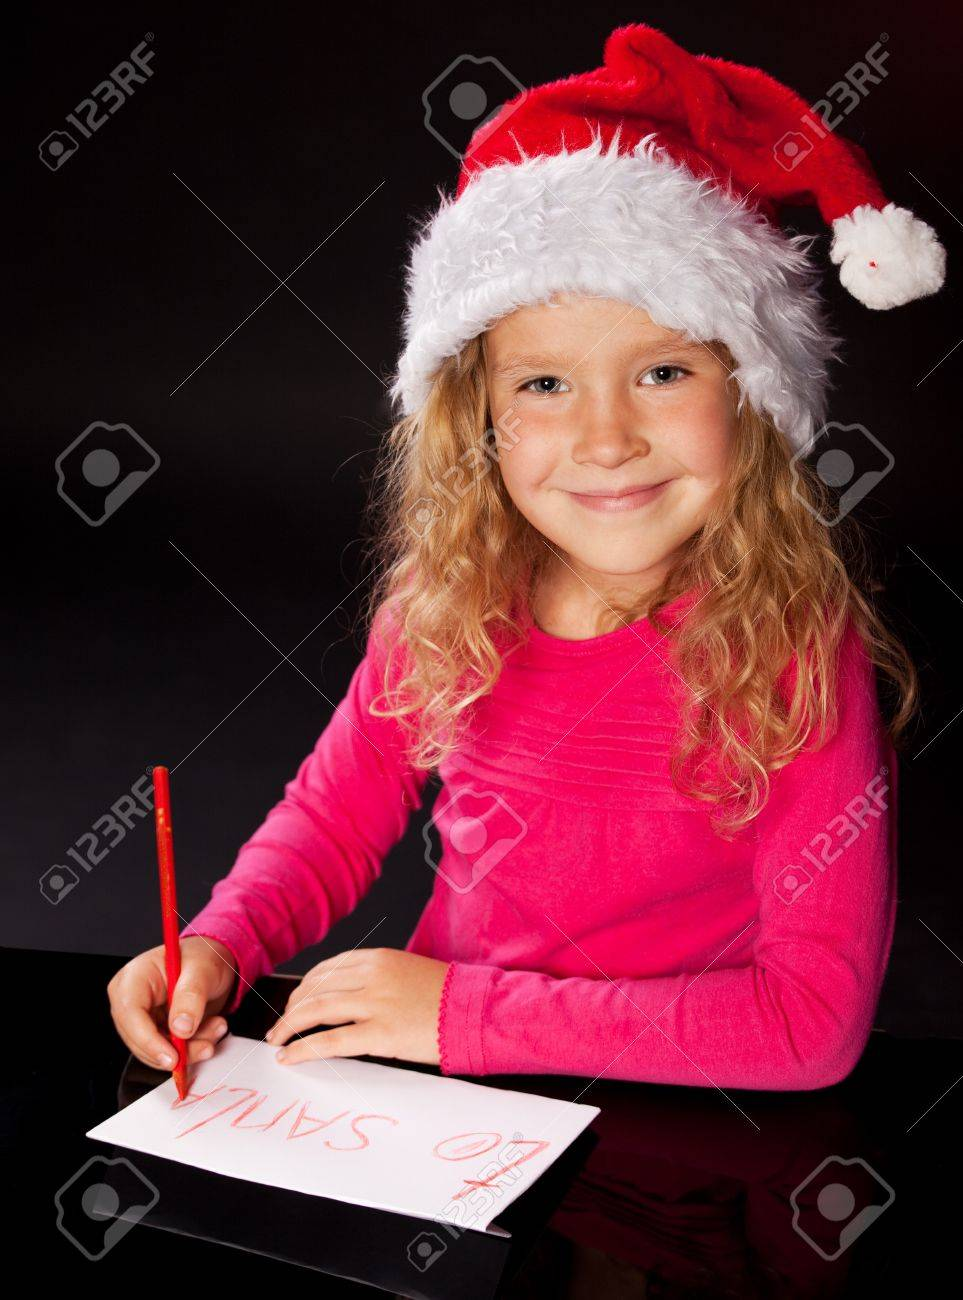 Child Writing A Letter To Santa Claus Little Girl Stock Photo